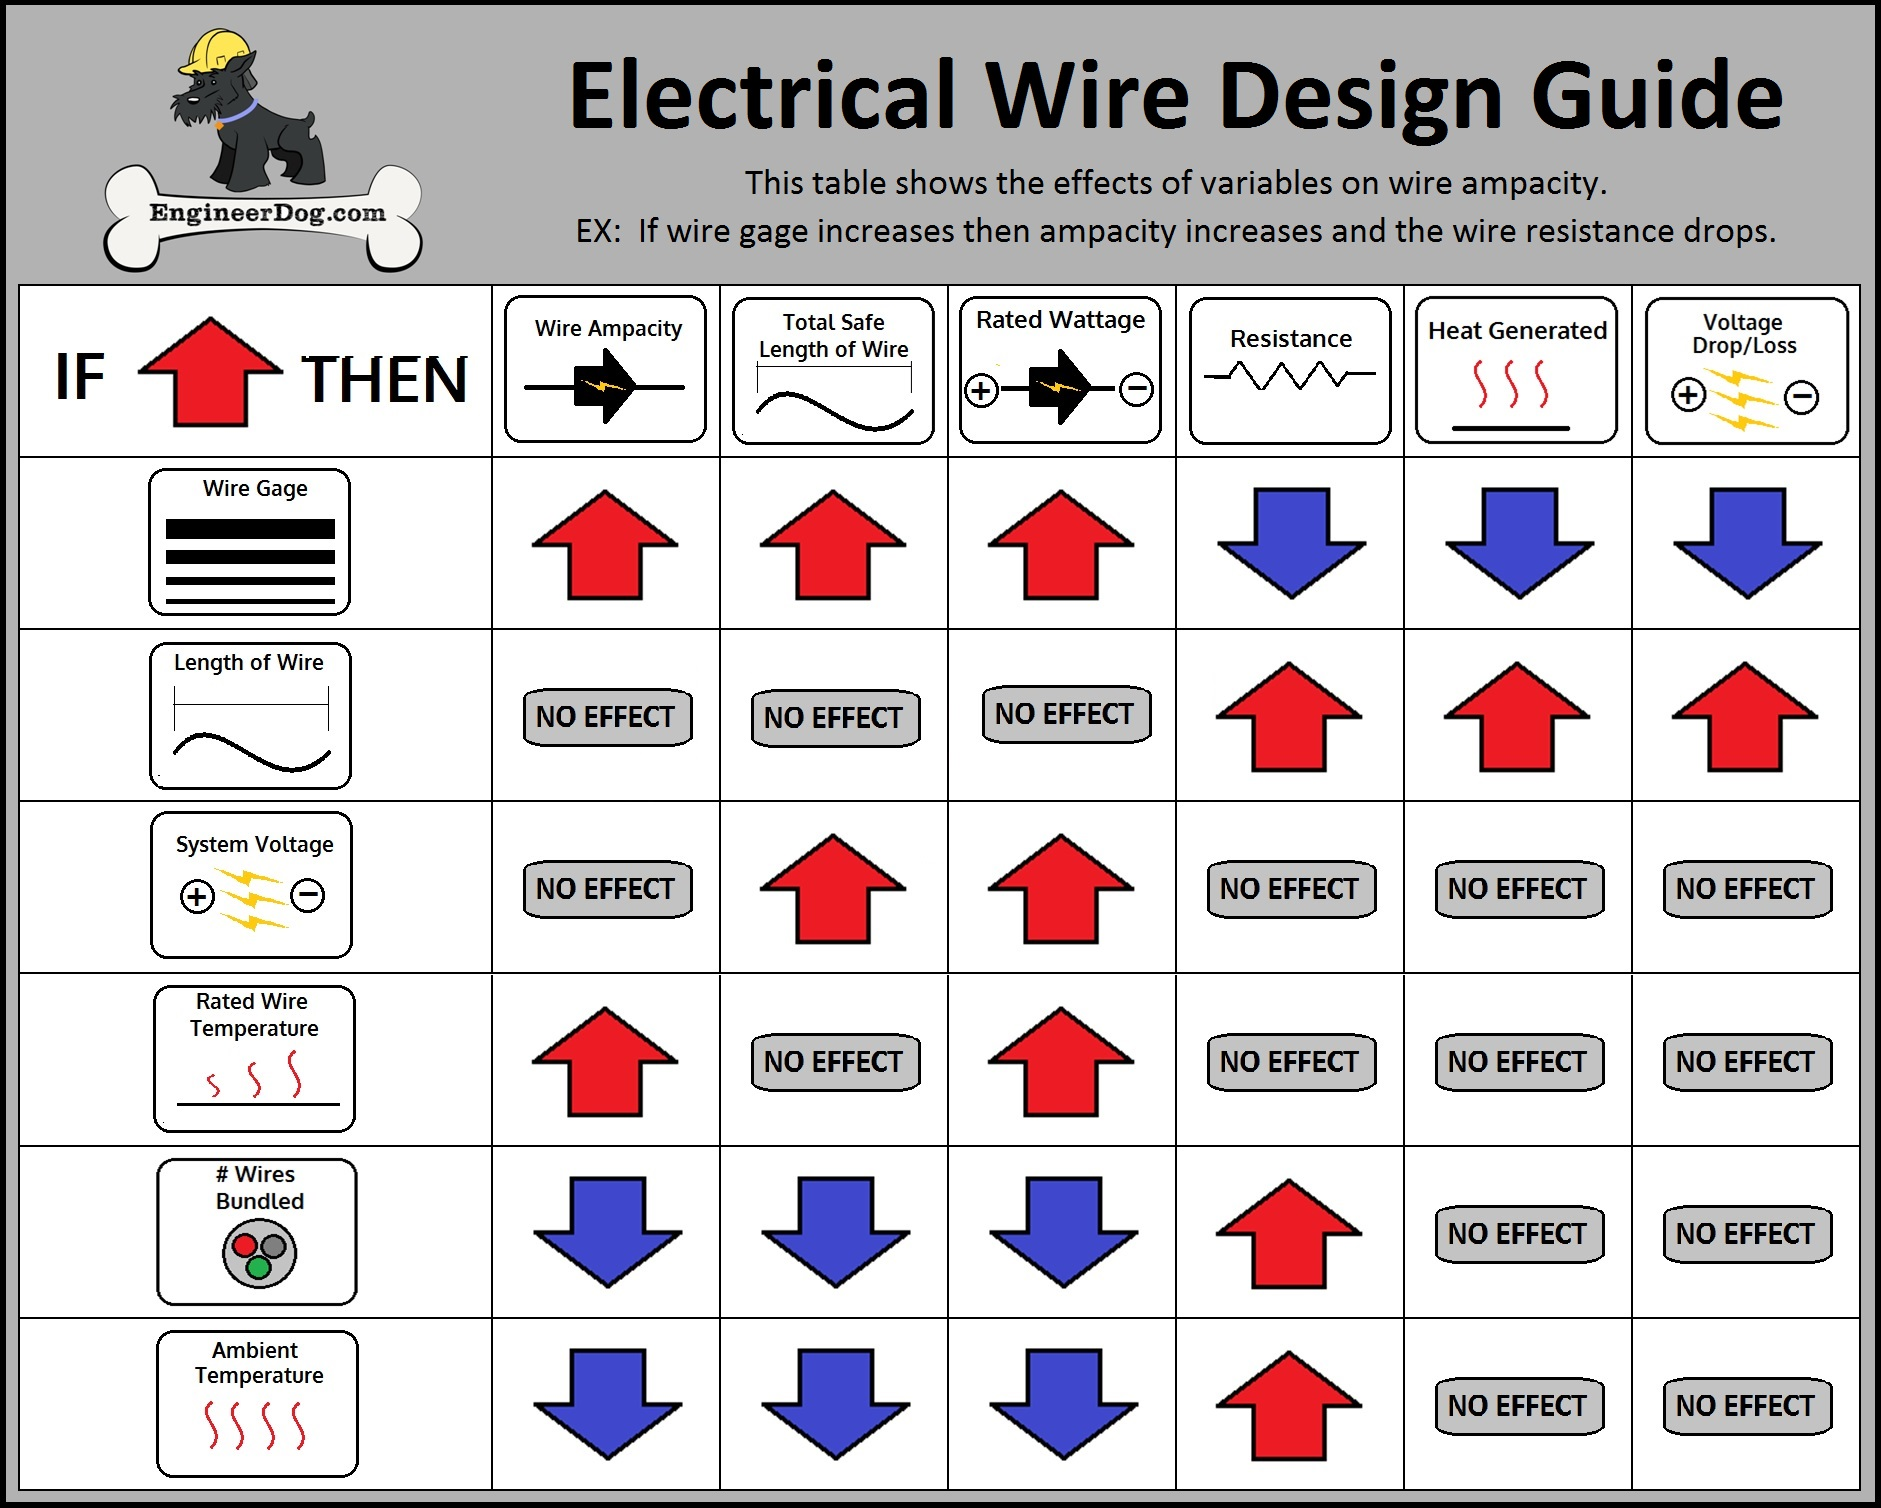 Electrical wiring gauge chart collection of wiring diagram free electrical wire gauge sizing calculator engineerdog rh engineerdog com automotive wire gauge chart 100 amp greentooth Image collections